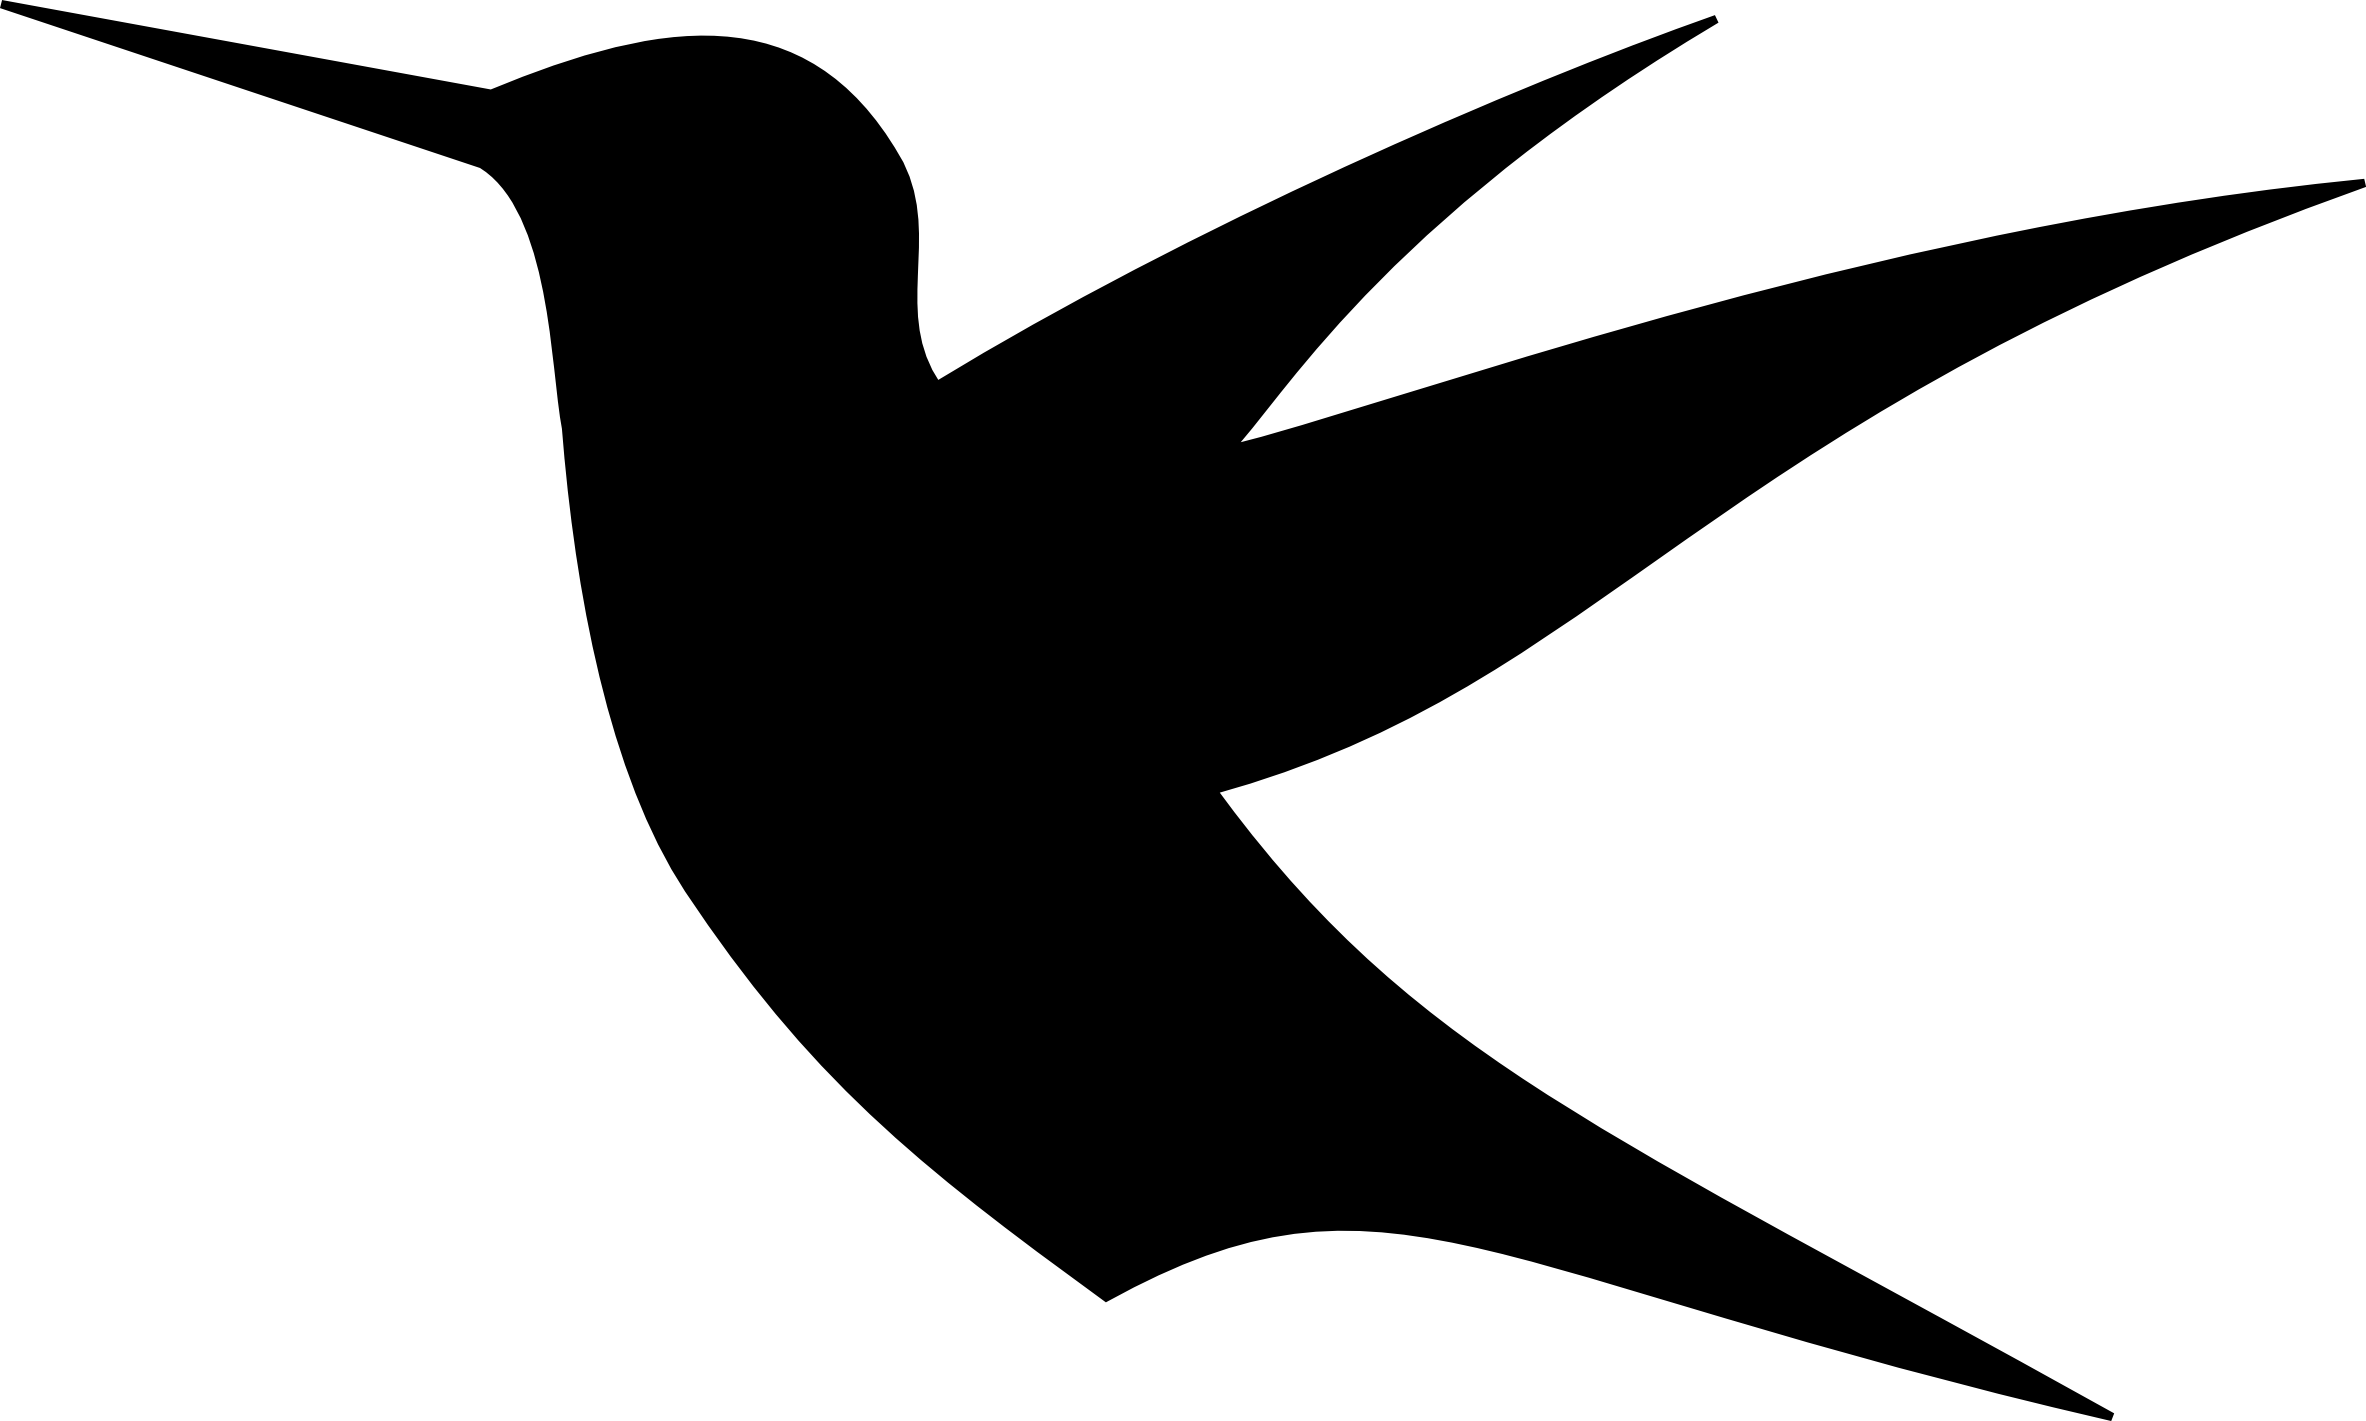 Bird outline png. How to draw a